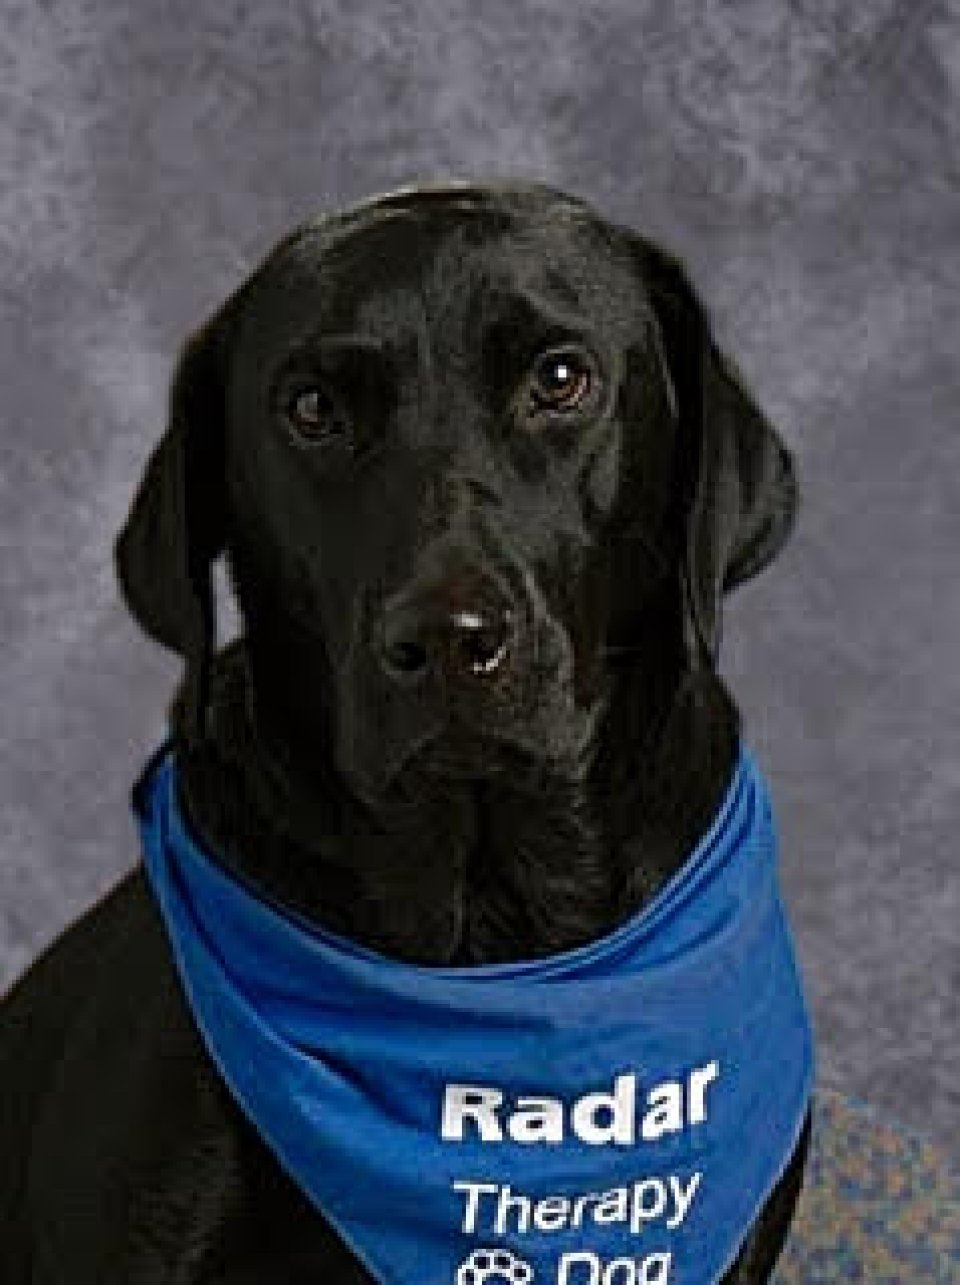 Radar, the school therapy dog